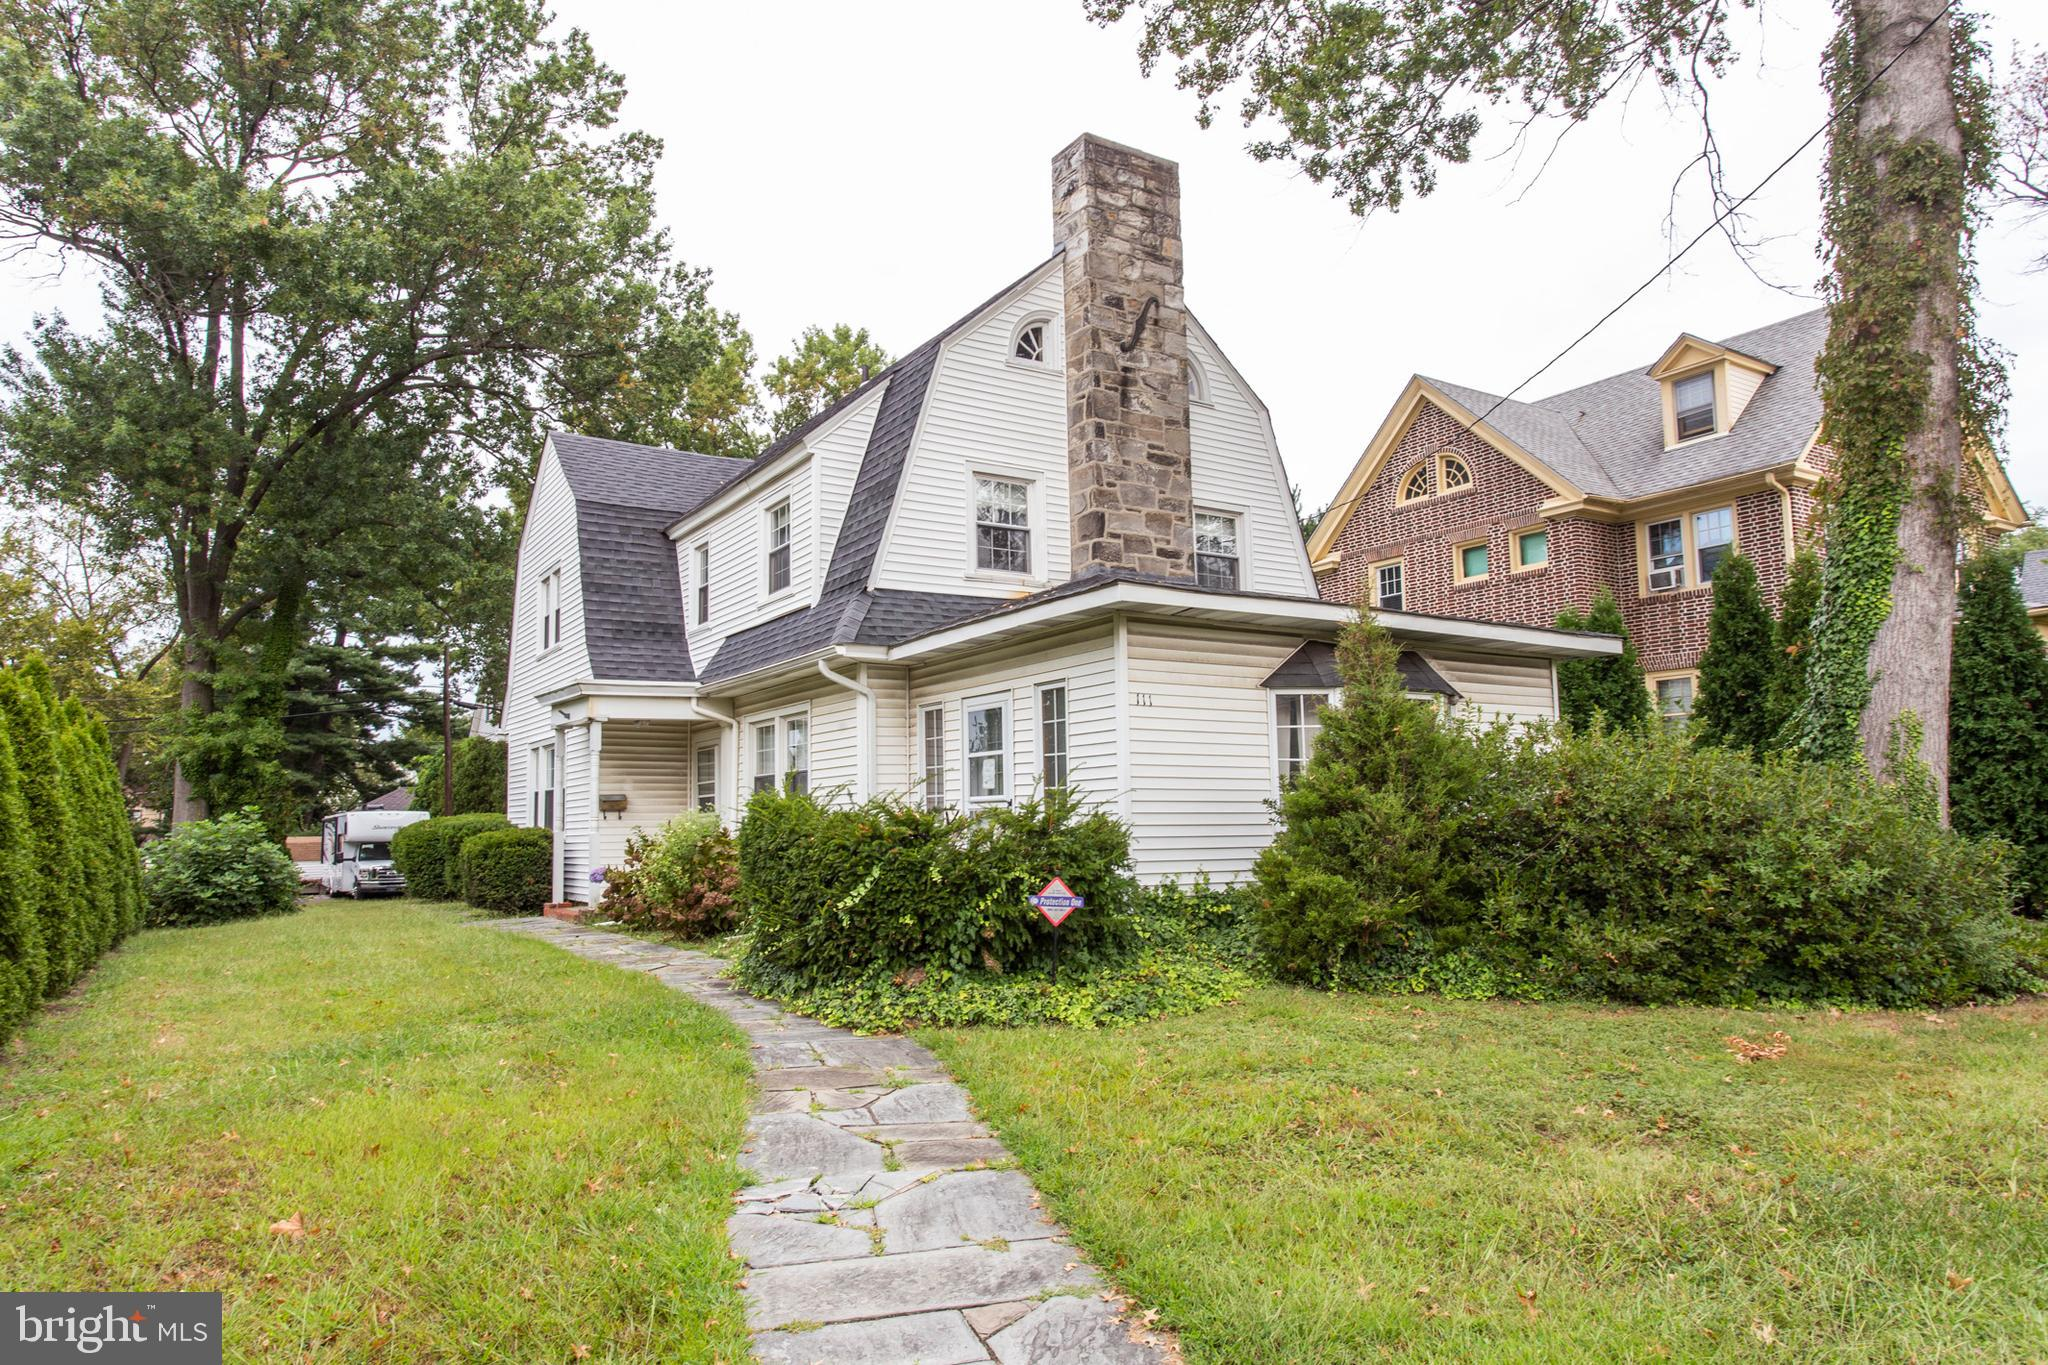 111 E WEST CHESTER PIKE, RIDLEY PARK, PA 19078